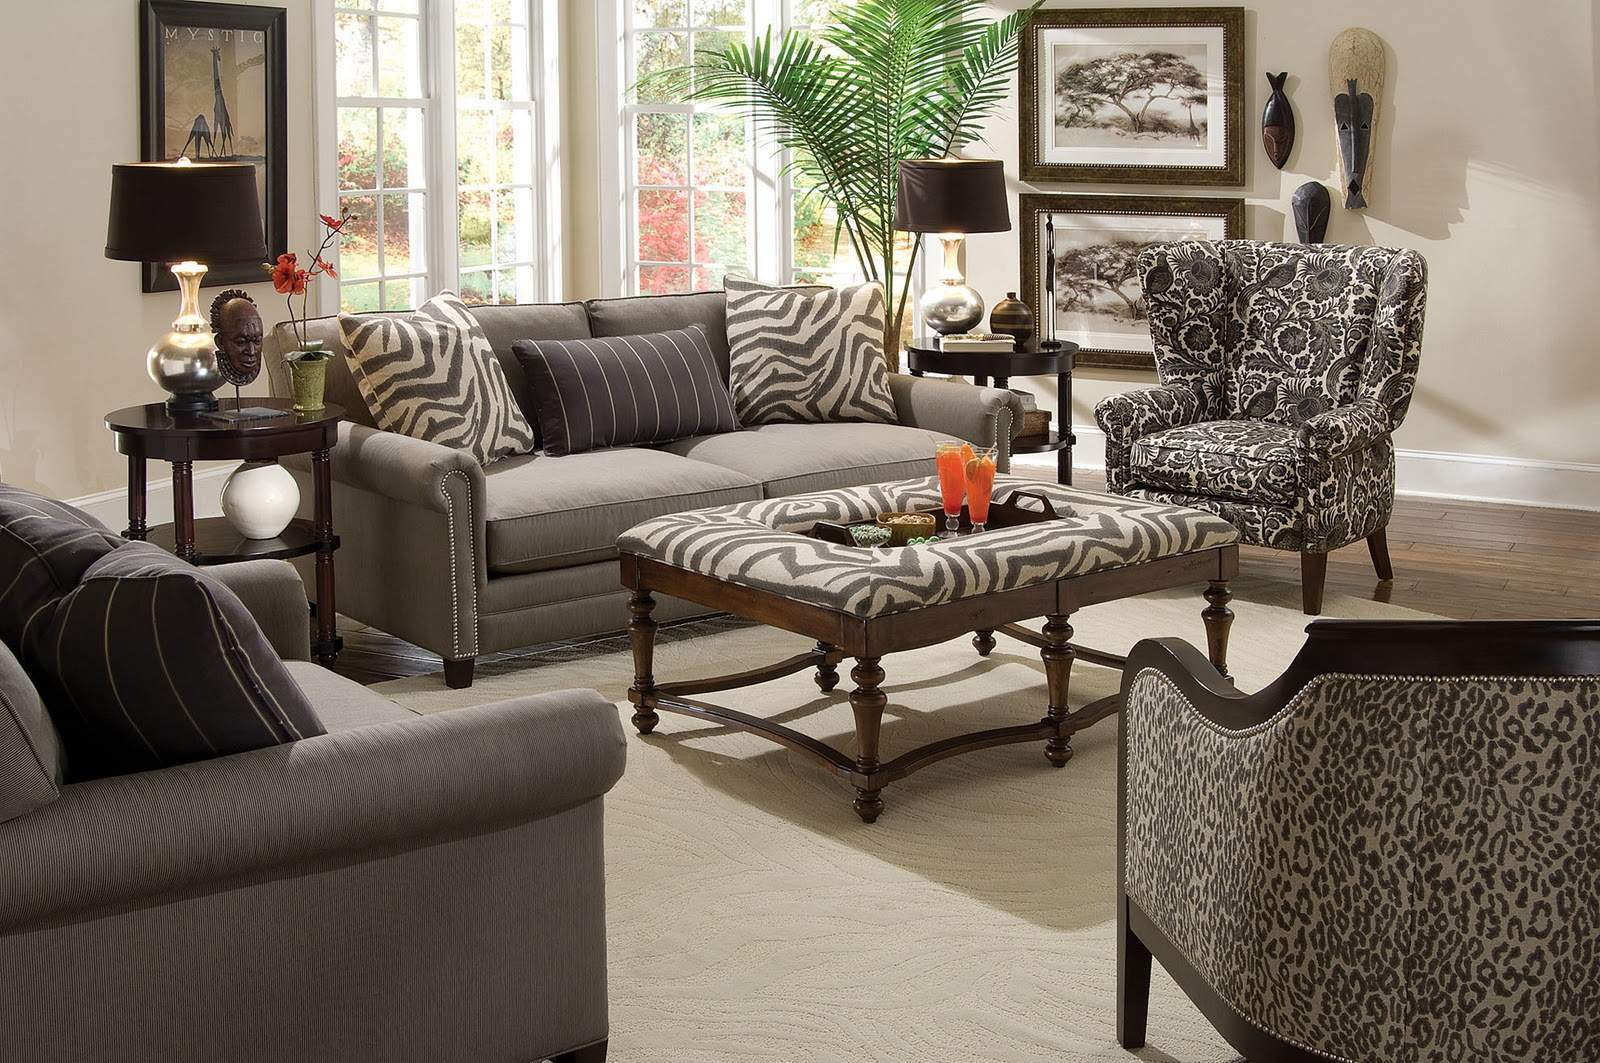 Reno Man New Home Furniture Styles